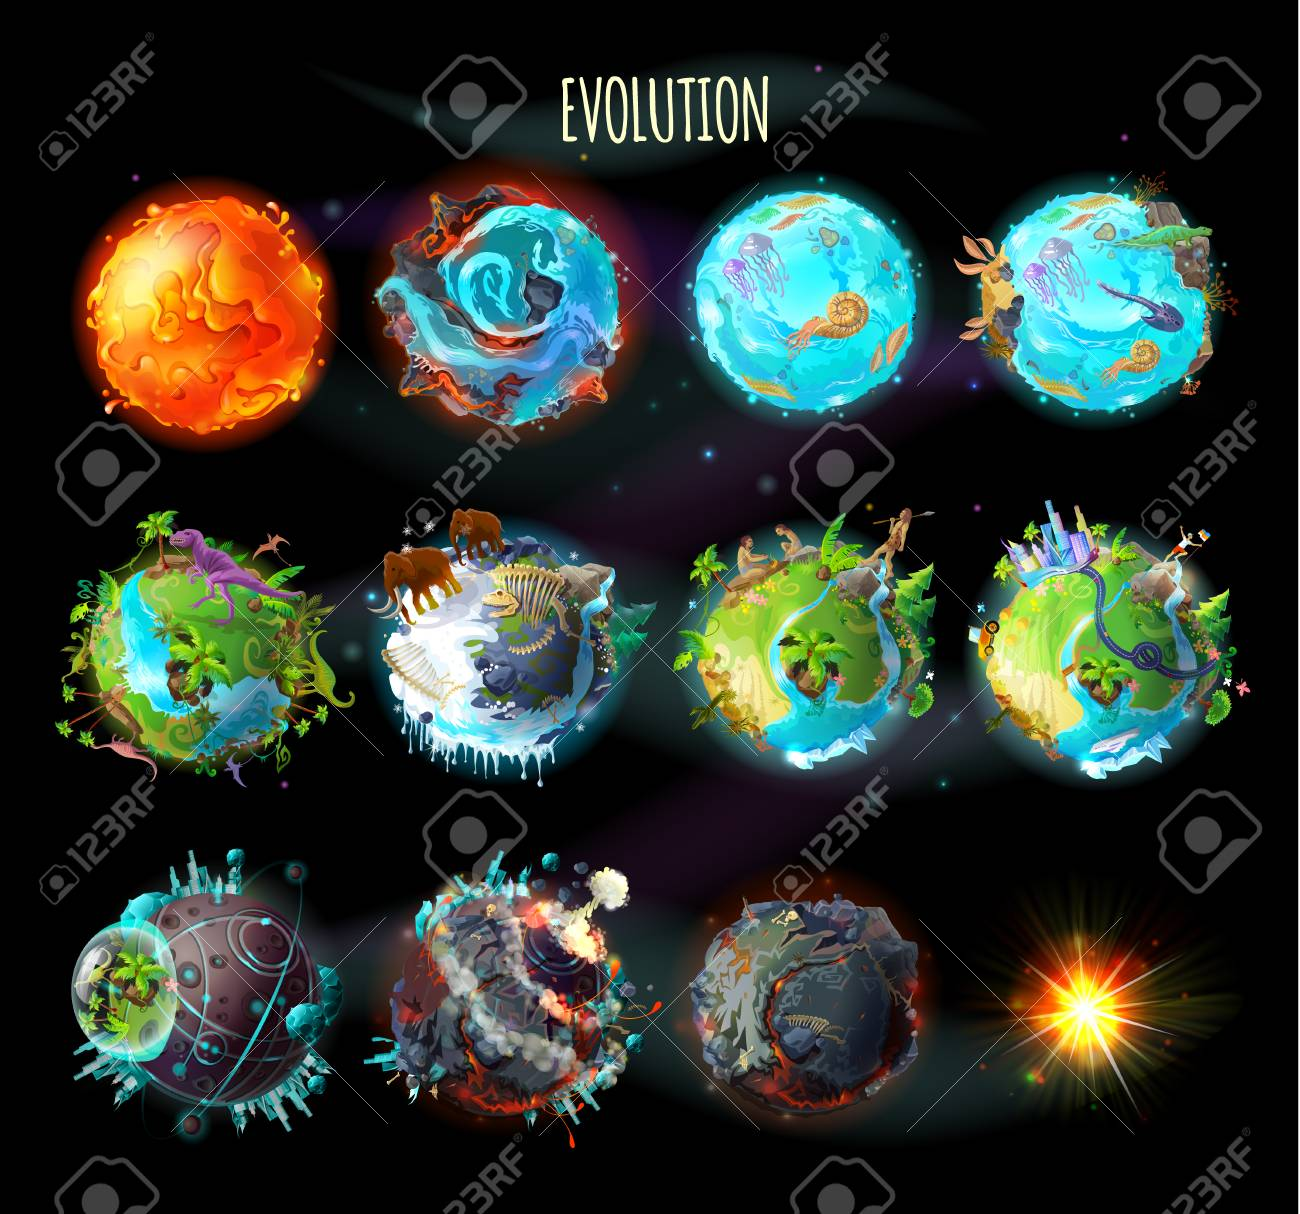 Stages of the origin of life on Earth, evolution, climate changes, technology progress, cataclysms, planetary explosion, death of planet, vector concept illustration. Timeline, infographic elements - 95176264